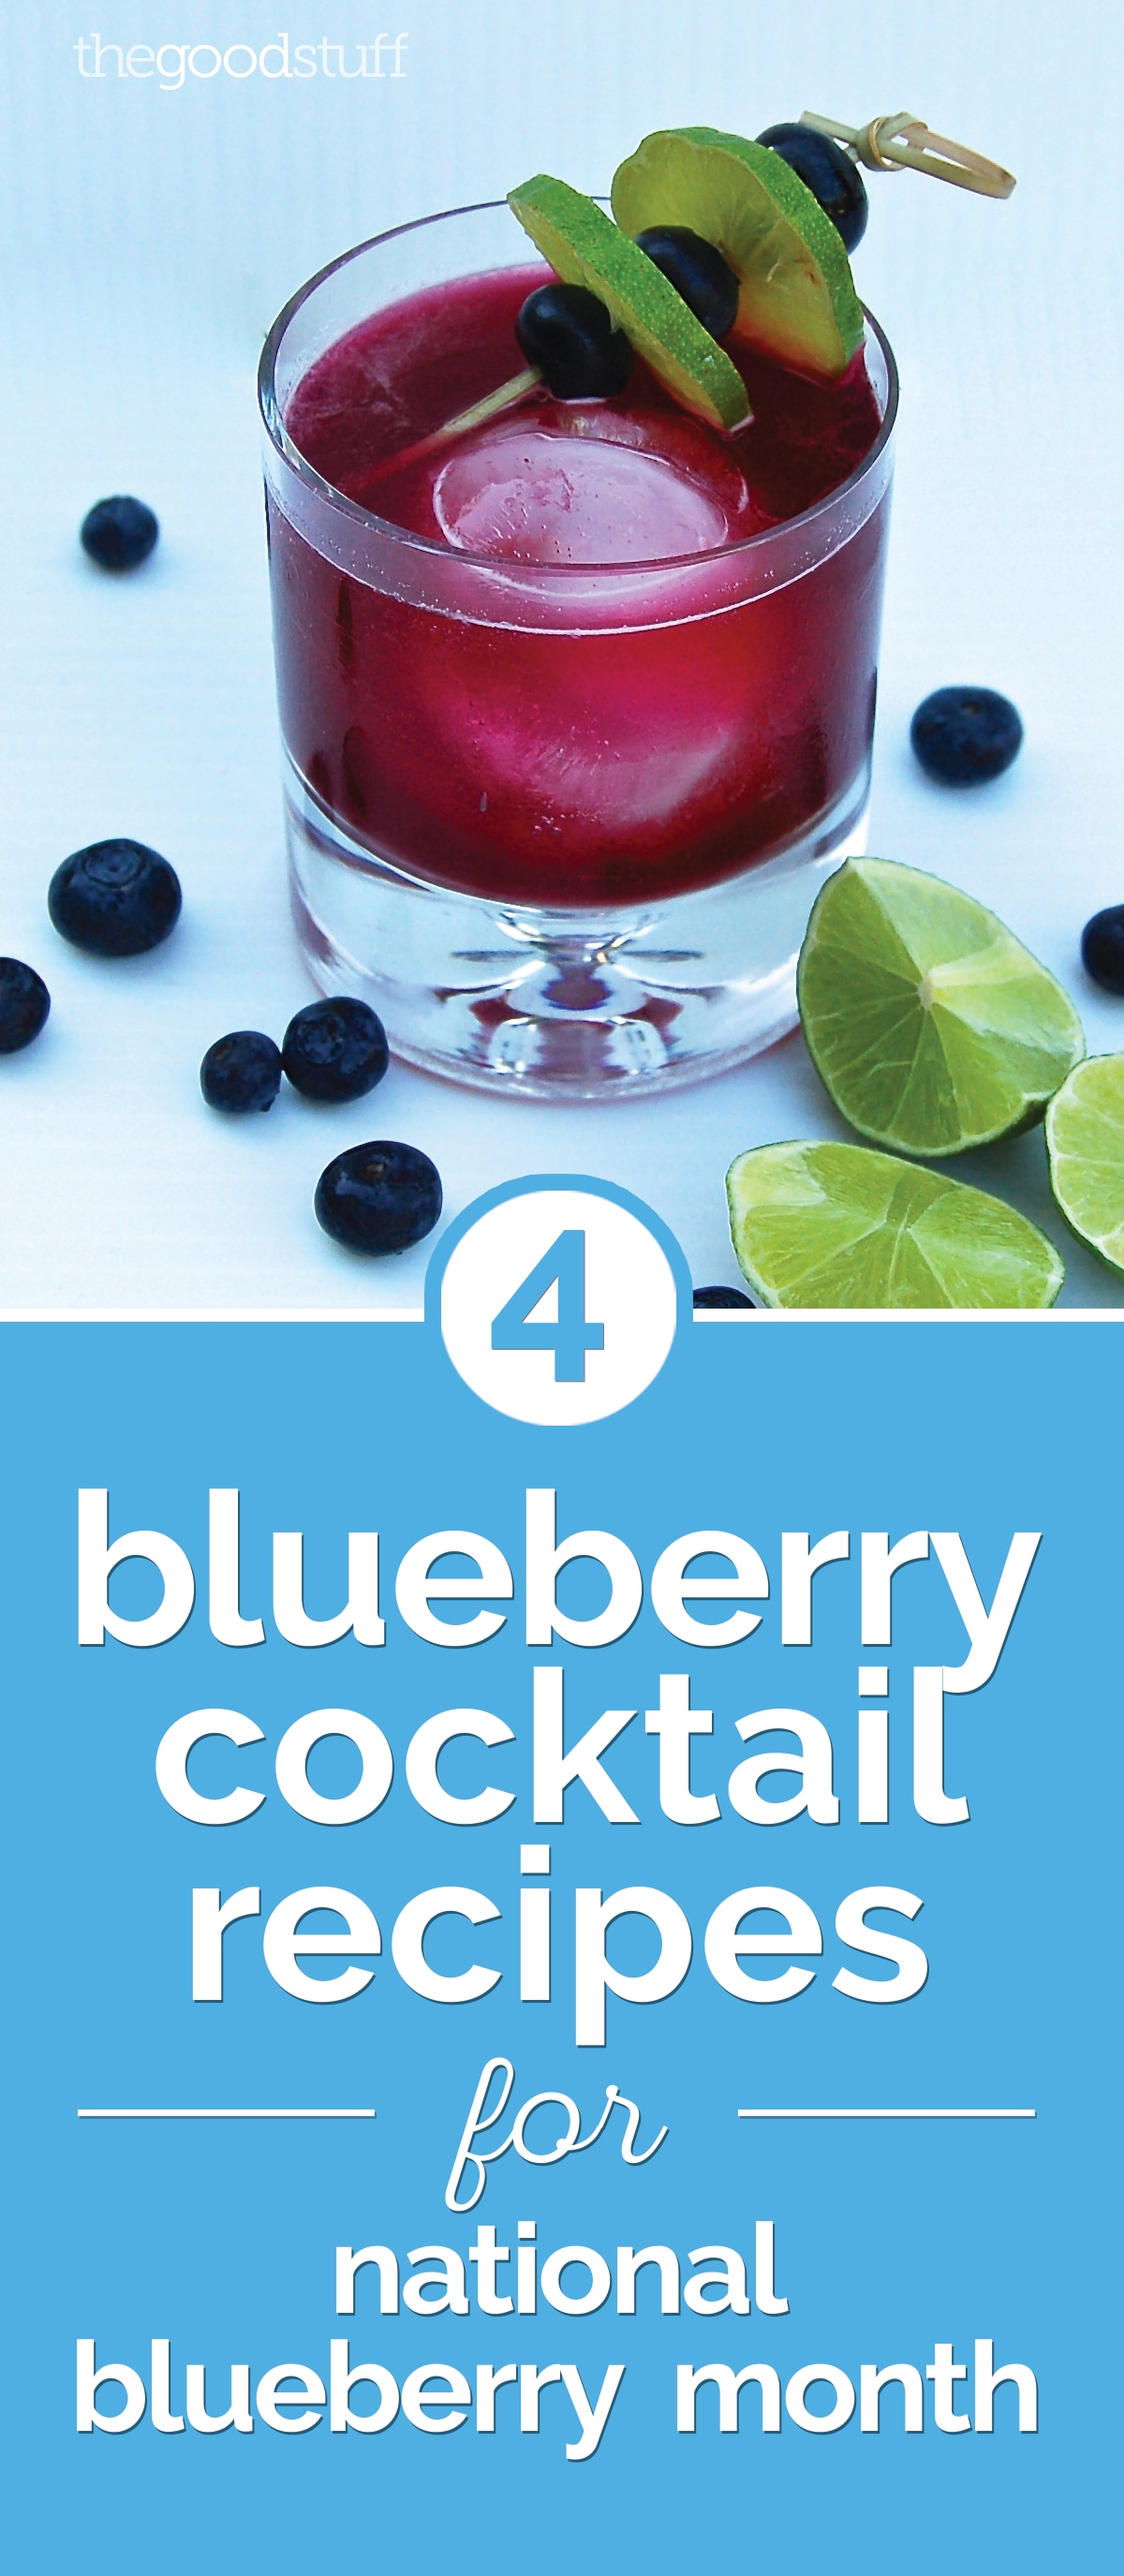 4 Blueberry Cocktail Recipes for National Blueberry Month | thegoodstuff